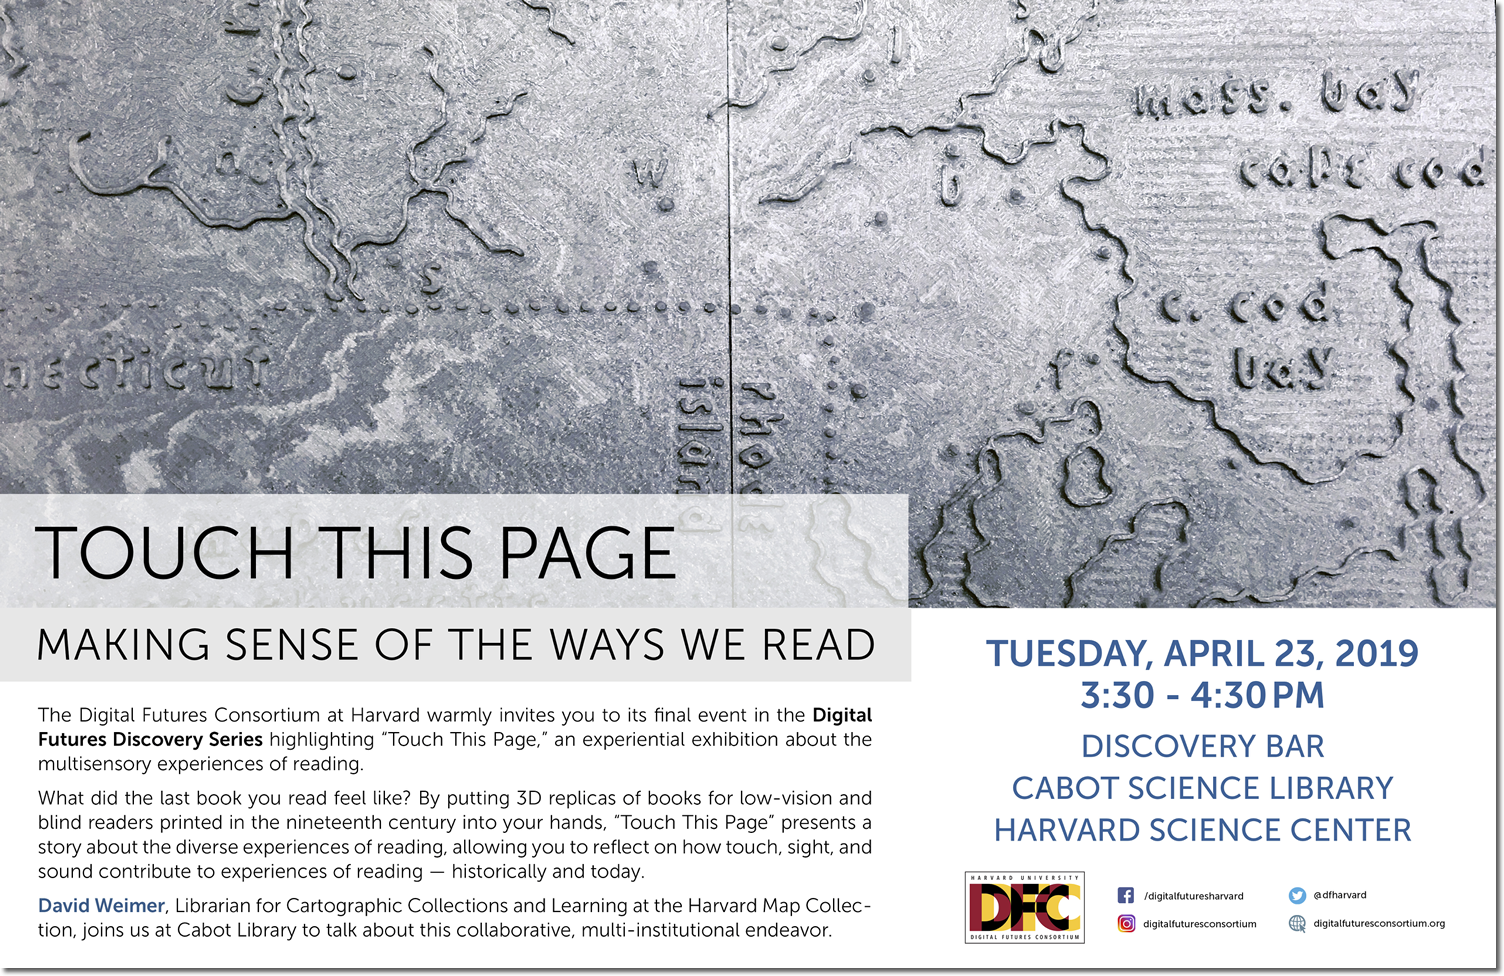 Digital Futures Discovery Series, April 23, 2019